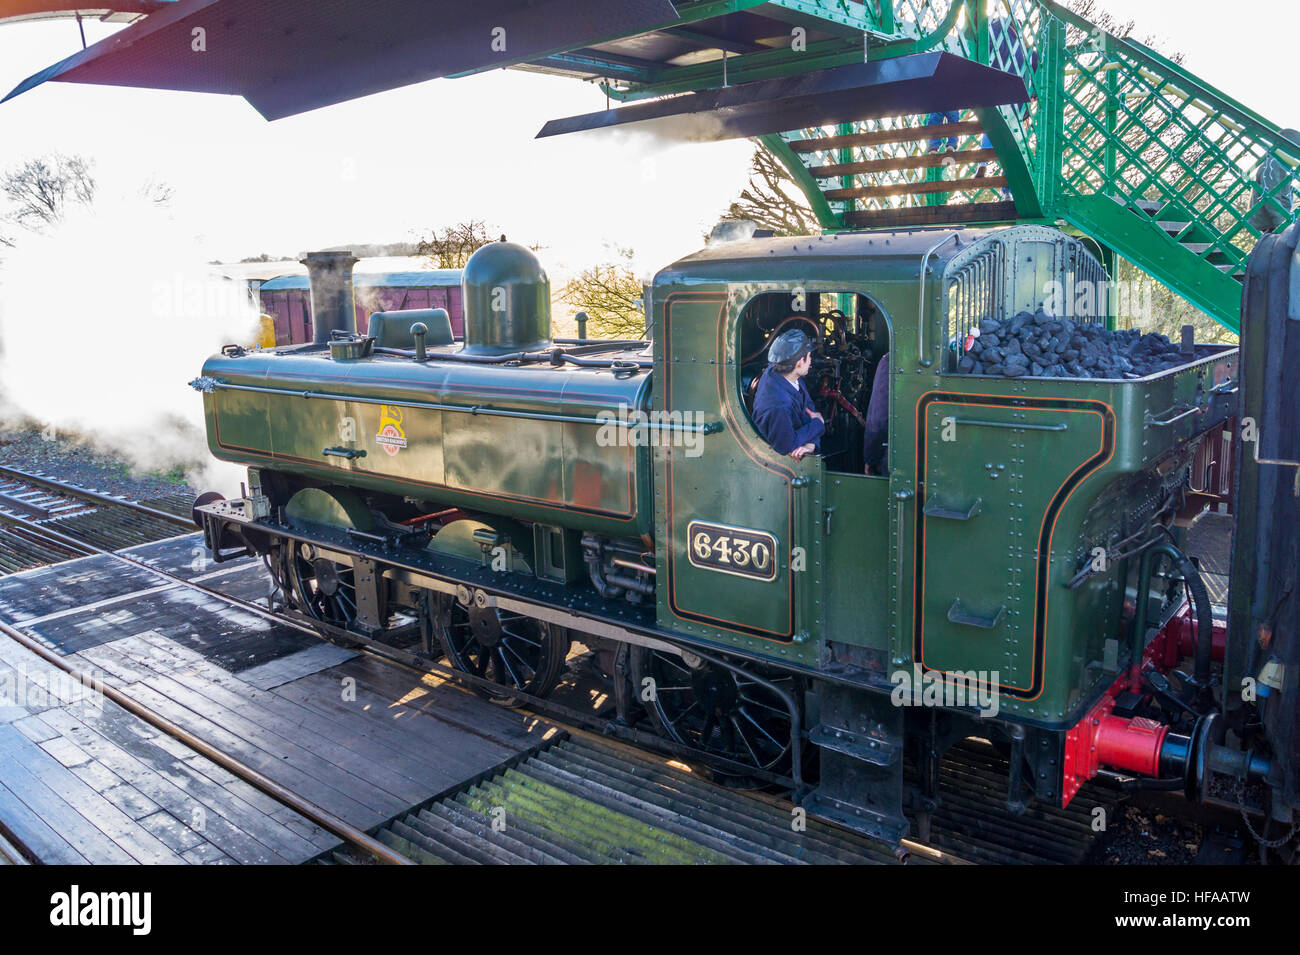 gwr-6430-pannier-tank-locomotive-1932-no